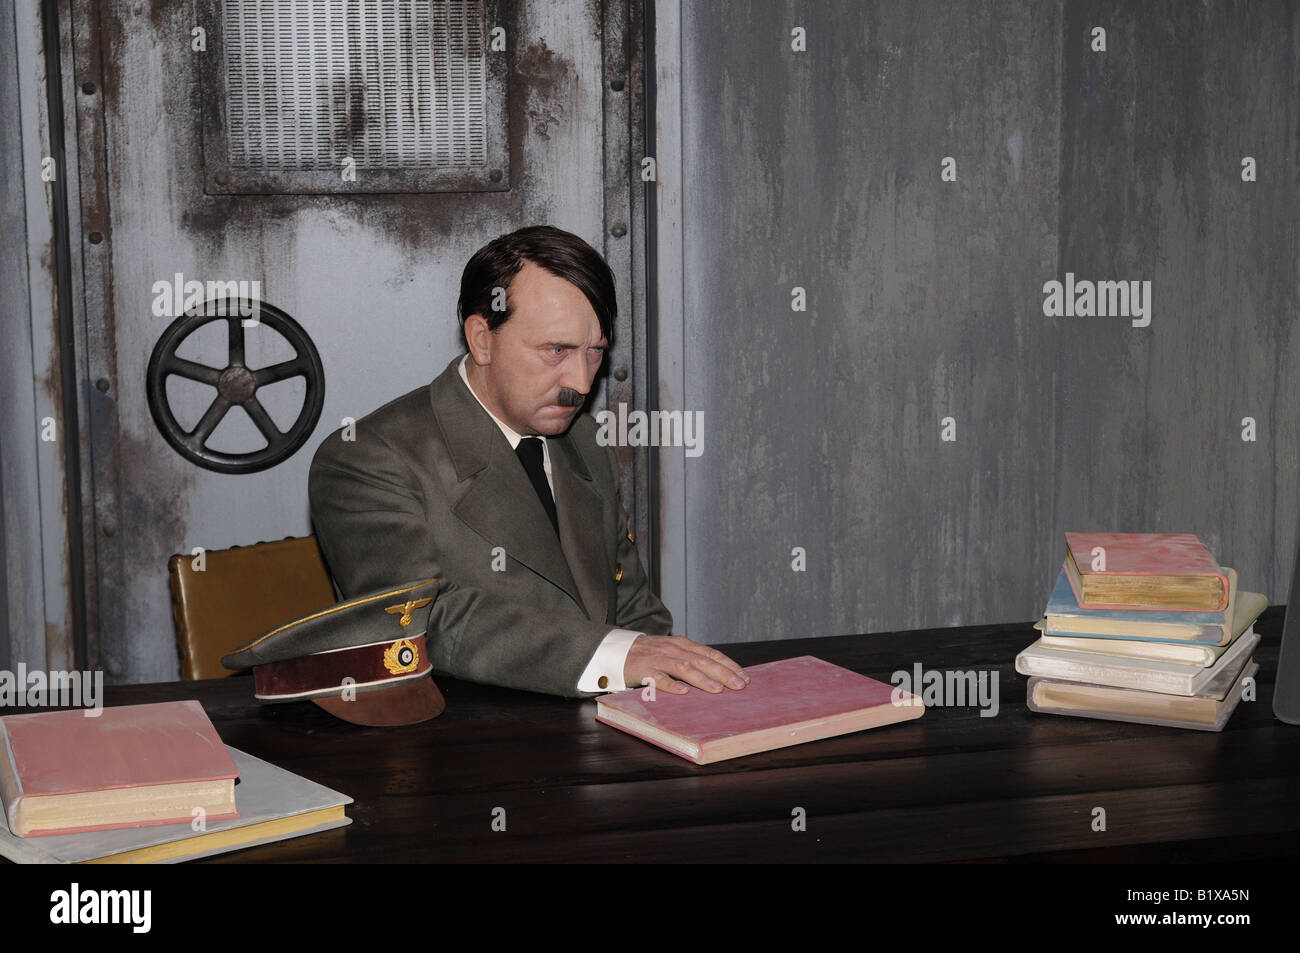 wax figure of adolf hitler at berlin madame tussauds exhibition stock photo royalty free image. Black Bedroom Furniture Sets. Home Design Ideas